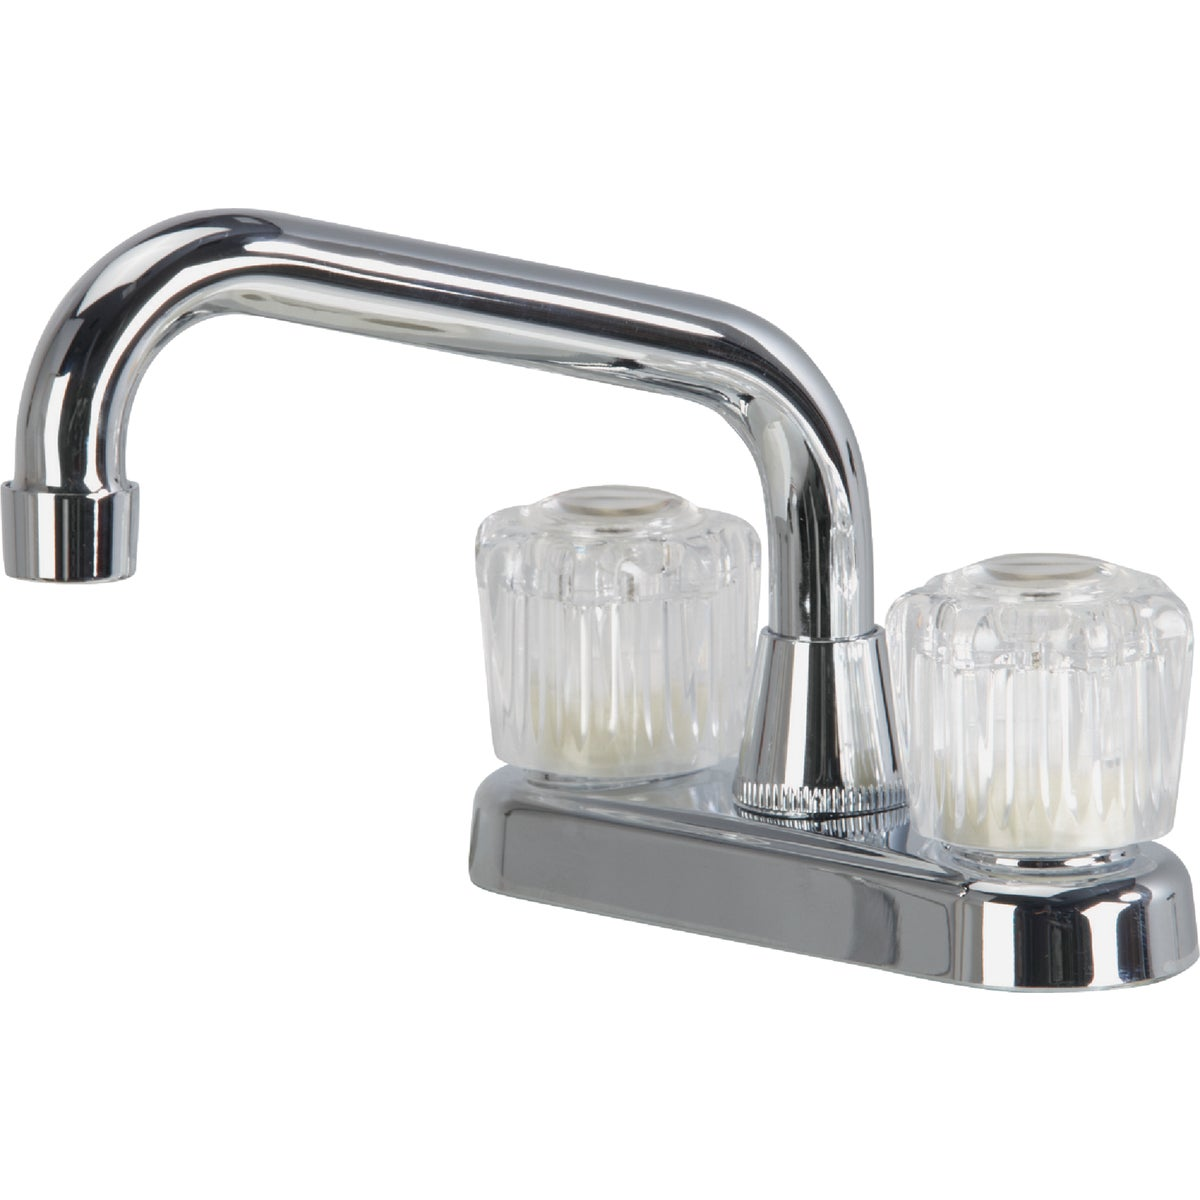 "4"" CHROME LAUNDRY FAUCET - FLZZ14CP-JPB3 by Globe Union"